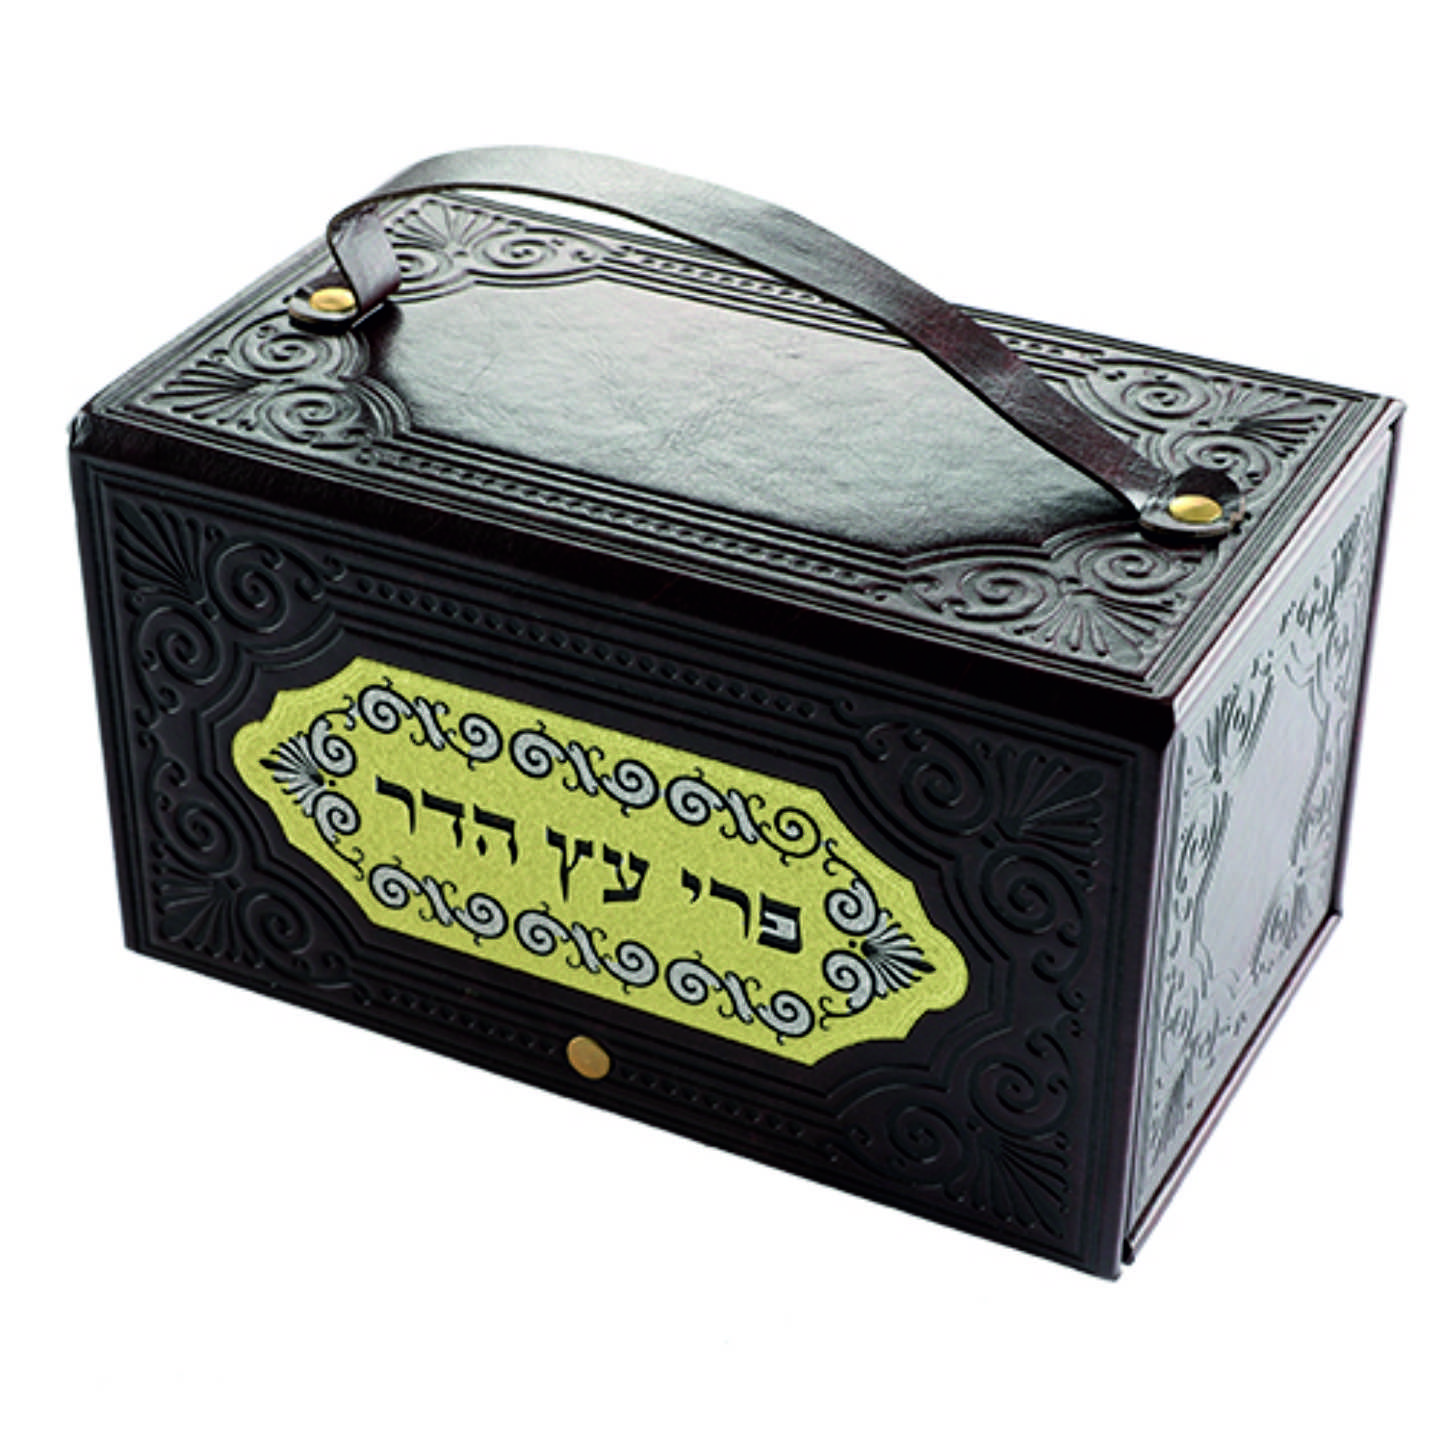 Faux Leather Etrog Box With Laser Cut Plate 19*11 Cm